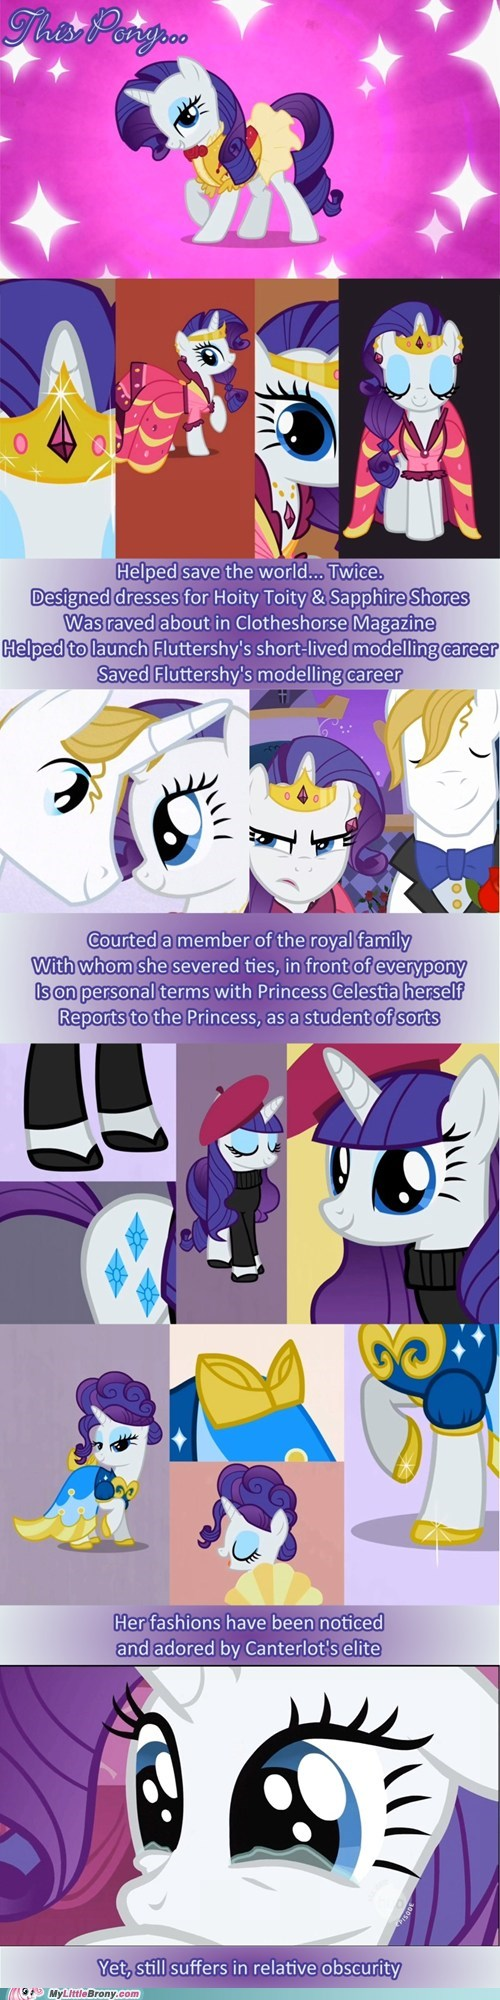 obscurity,ponies,pony,rarity,underrated